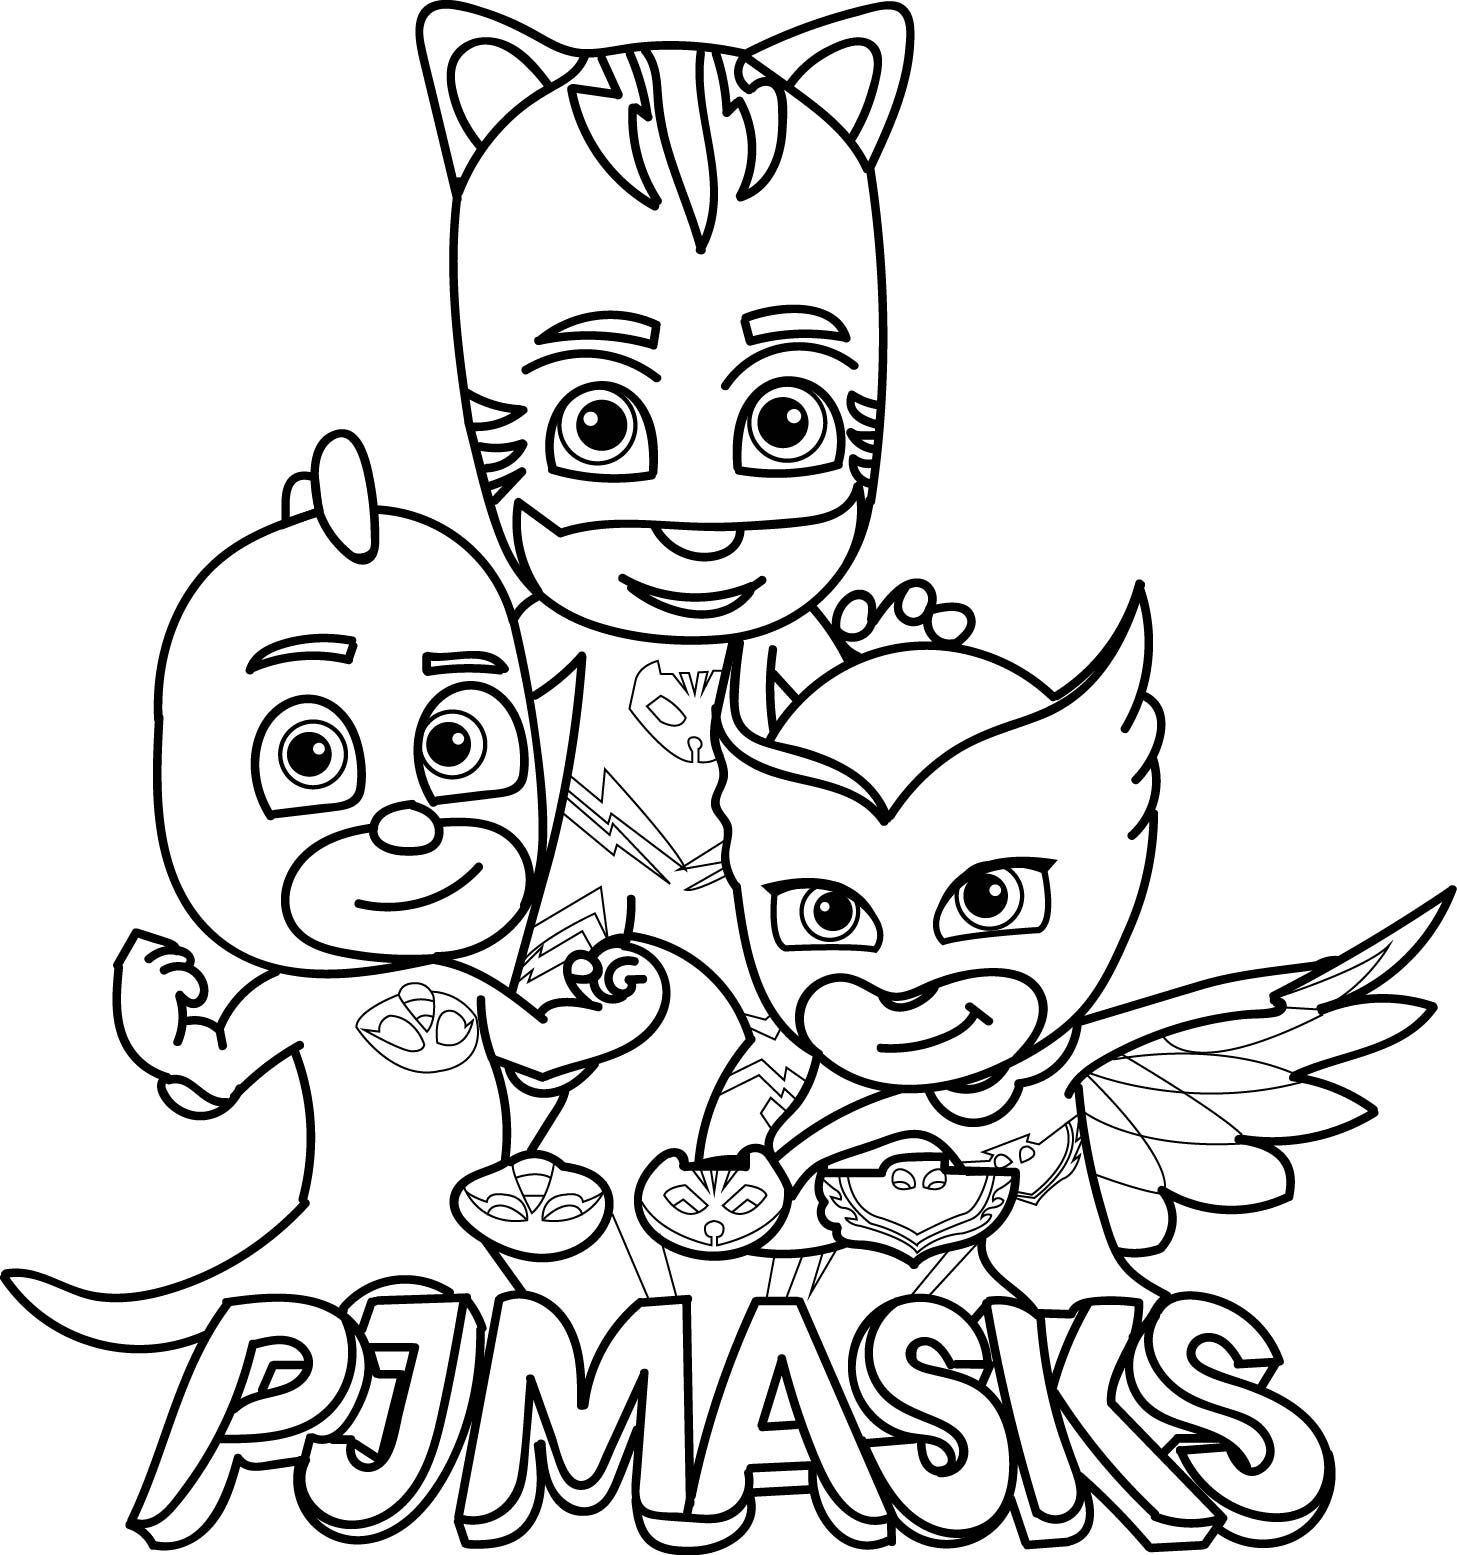 Pj Masks Coloring Page Coloring Pages For The Kids Pinterest